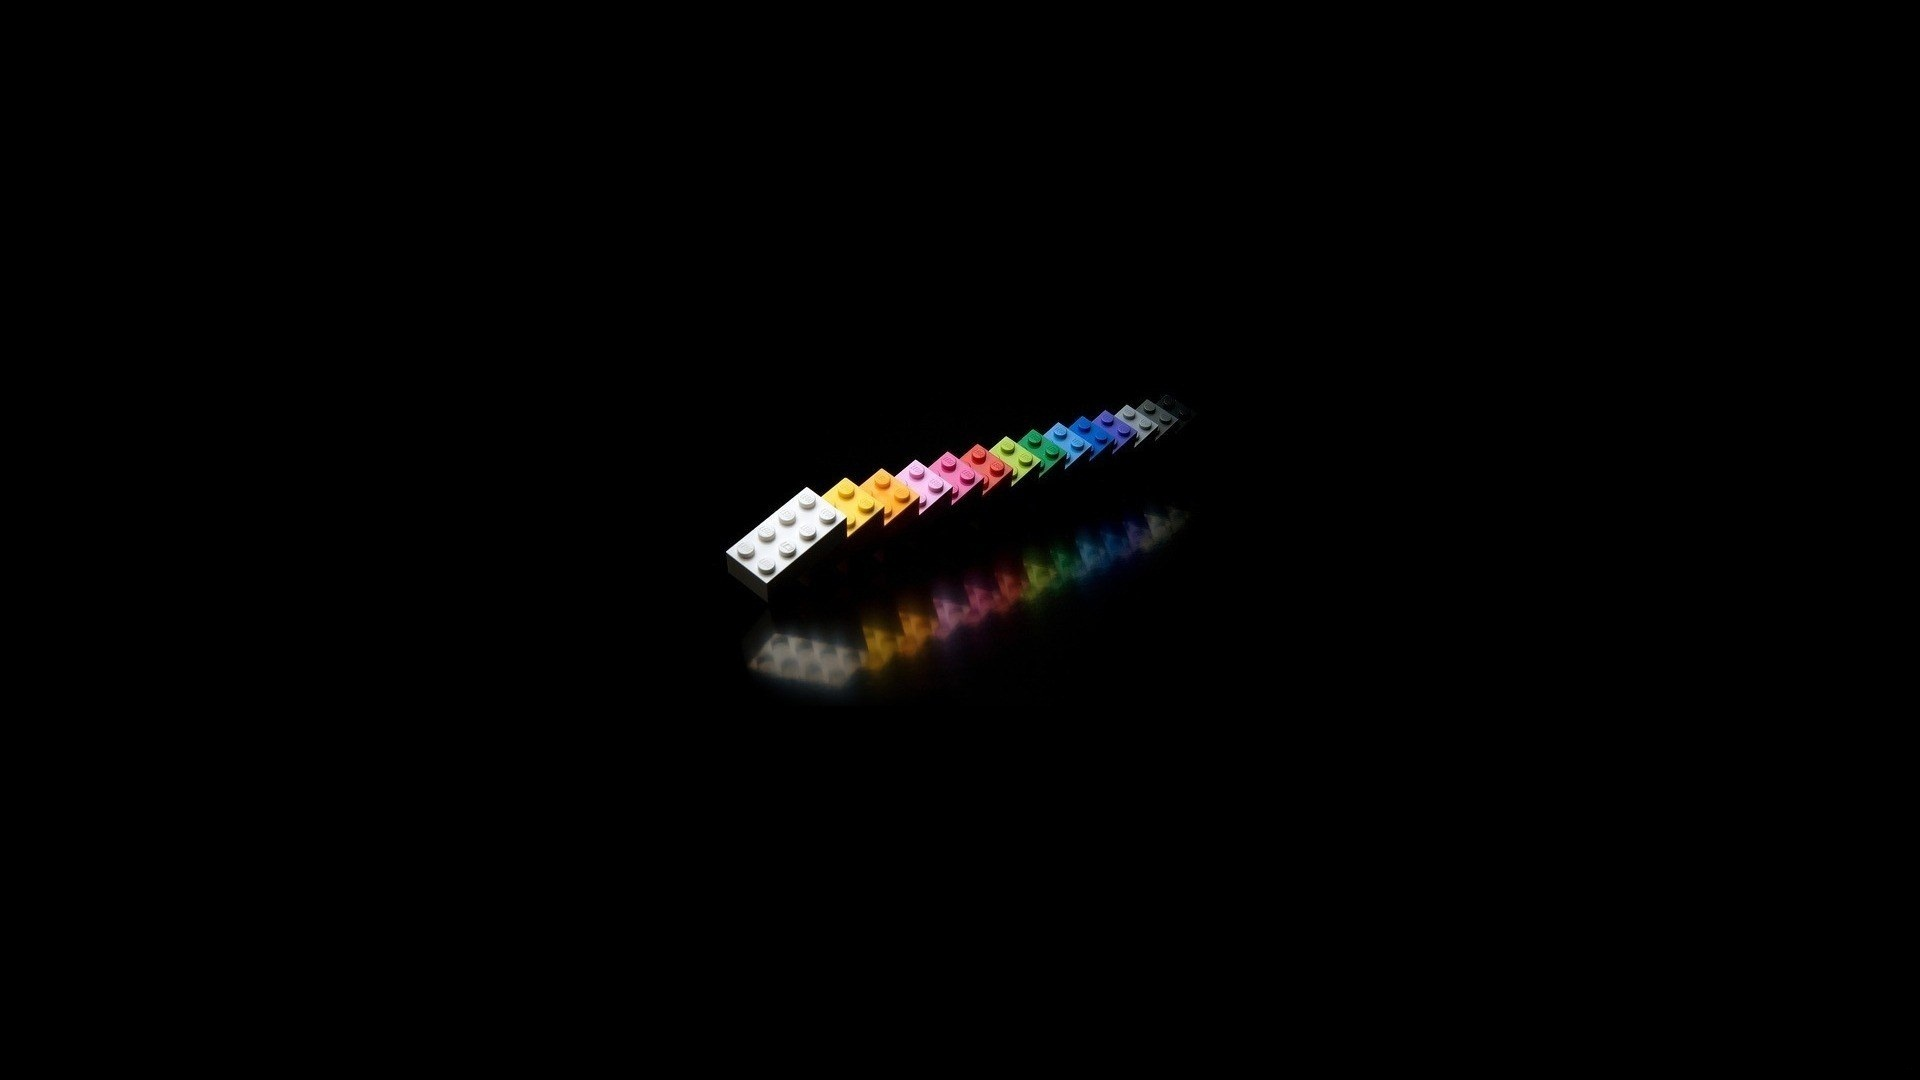 Collection of Black Hd Desktop Wallpapers on HDWallpapers